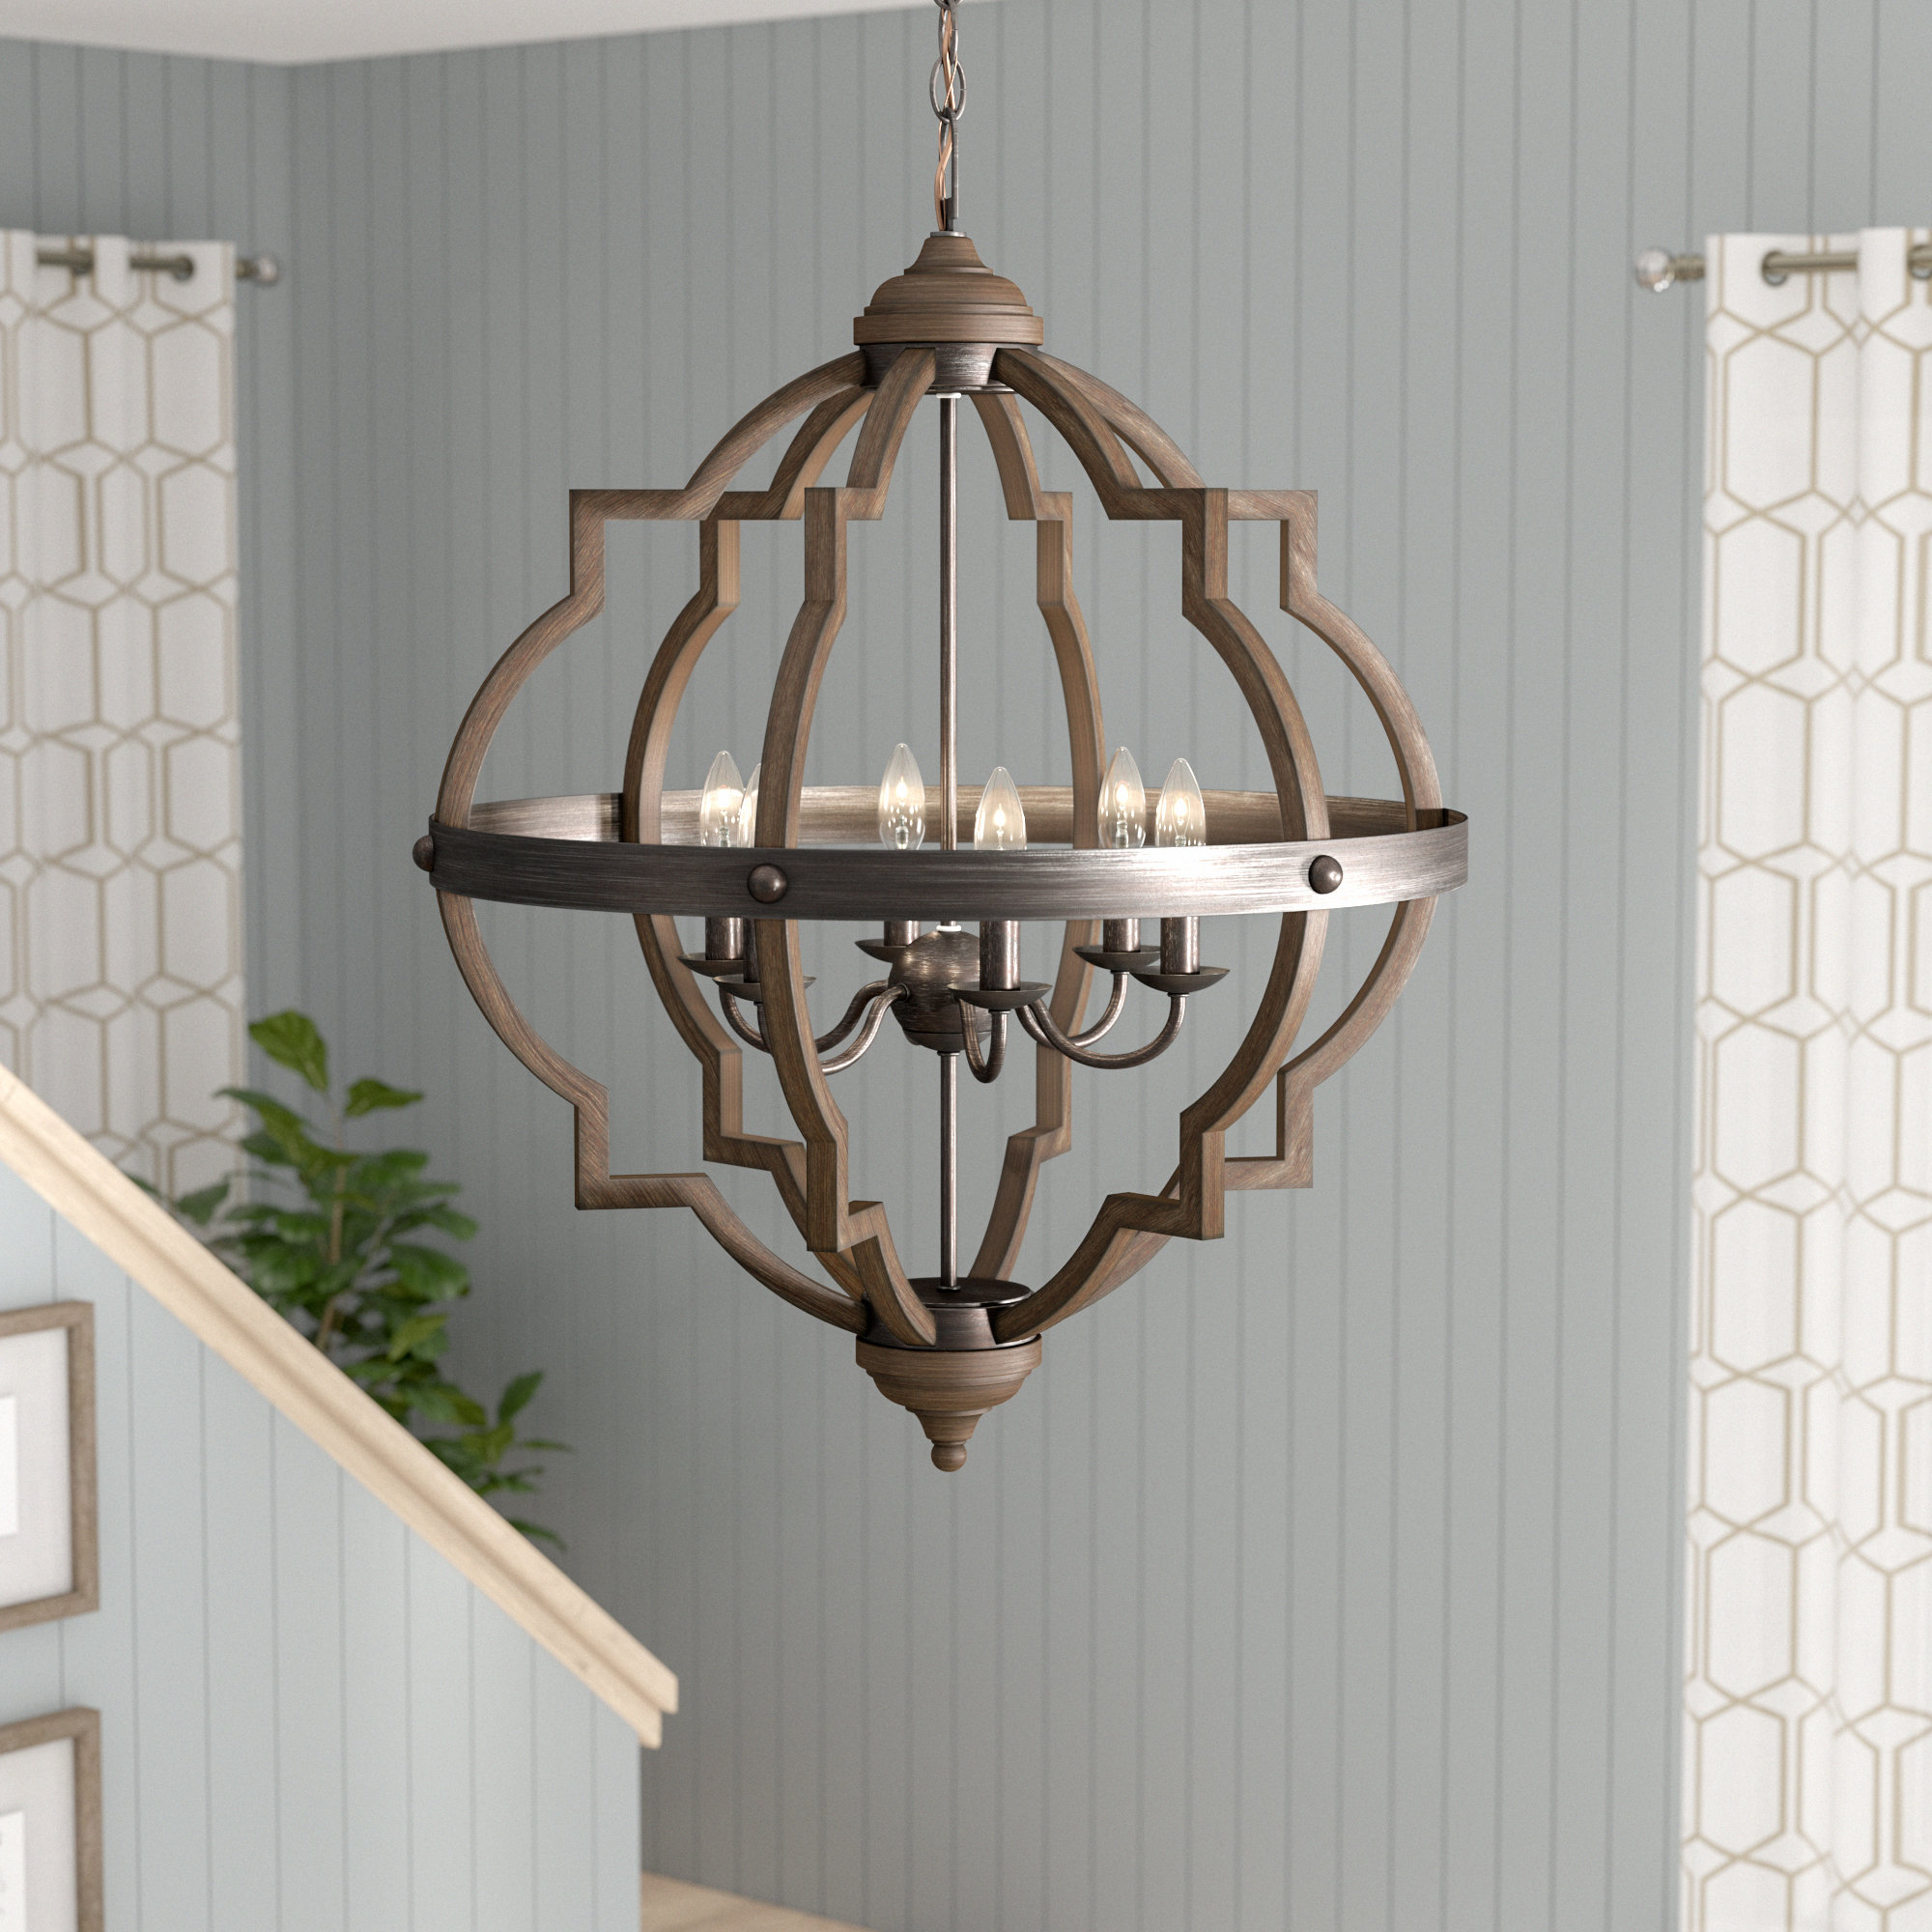 Adcock 3 Light Single Globe Pendants With Regard To Well Liked Everly Quinn Adcock 3 Light Single Globe Pendant & Reviews (Gallery 10 of 20)